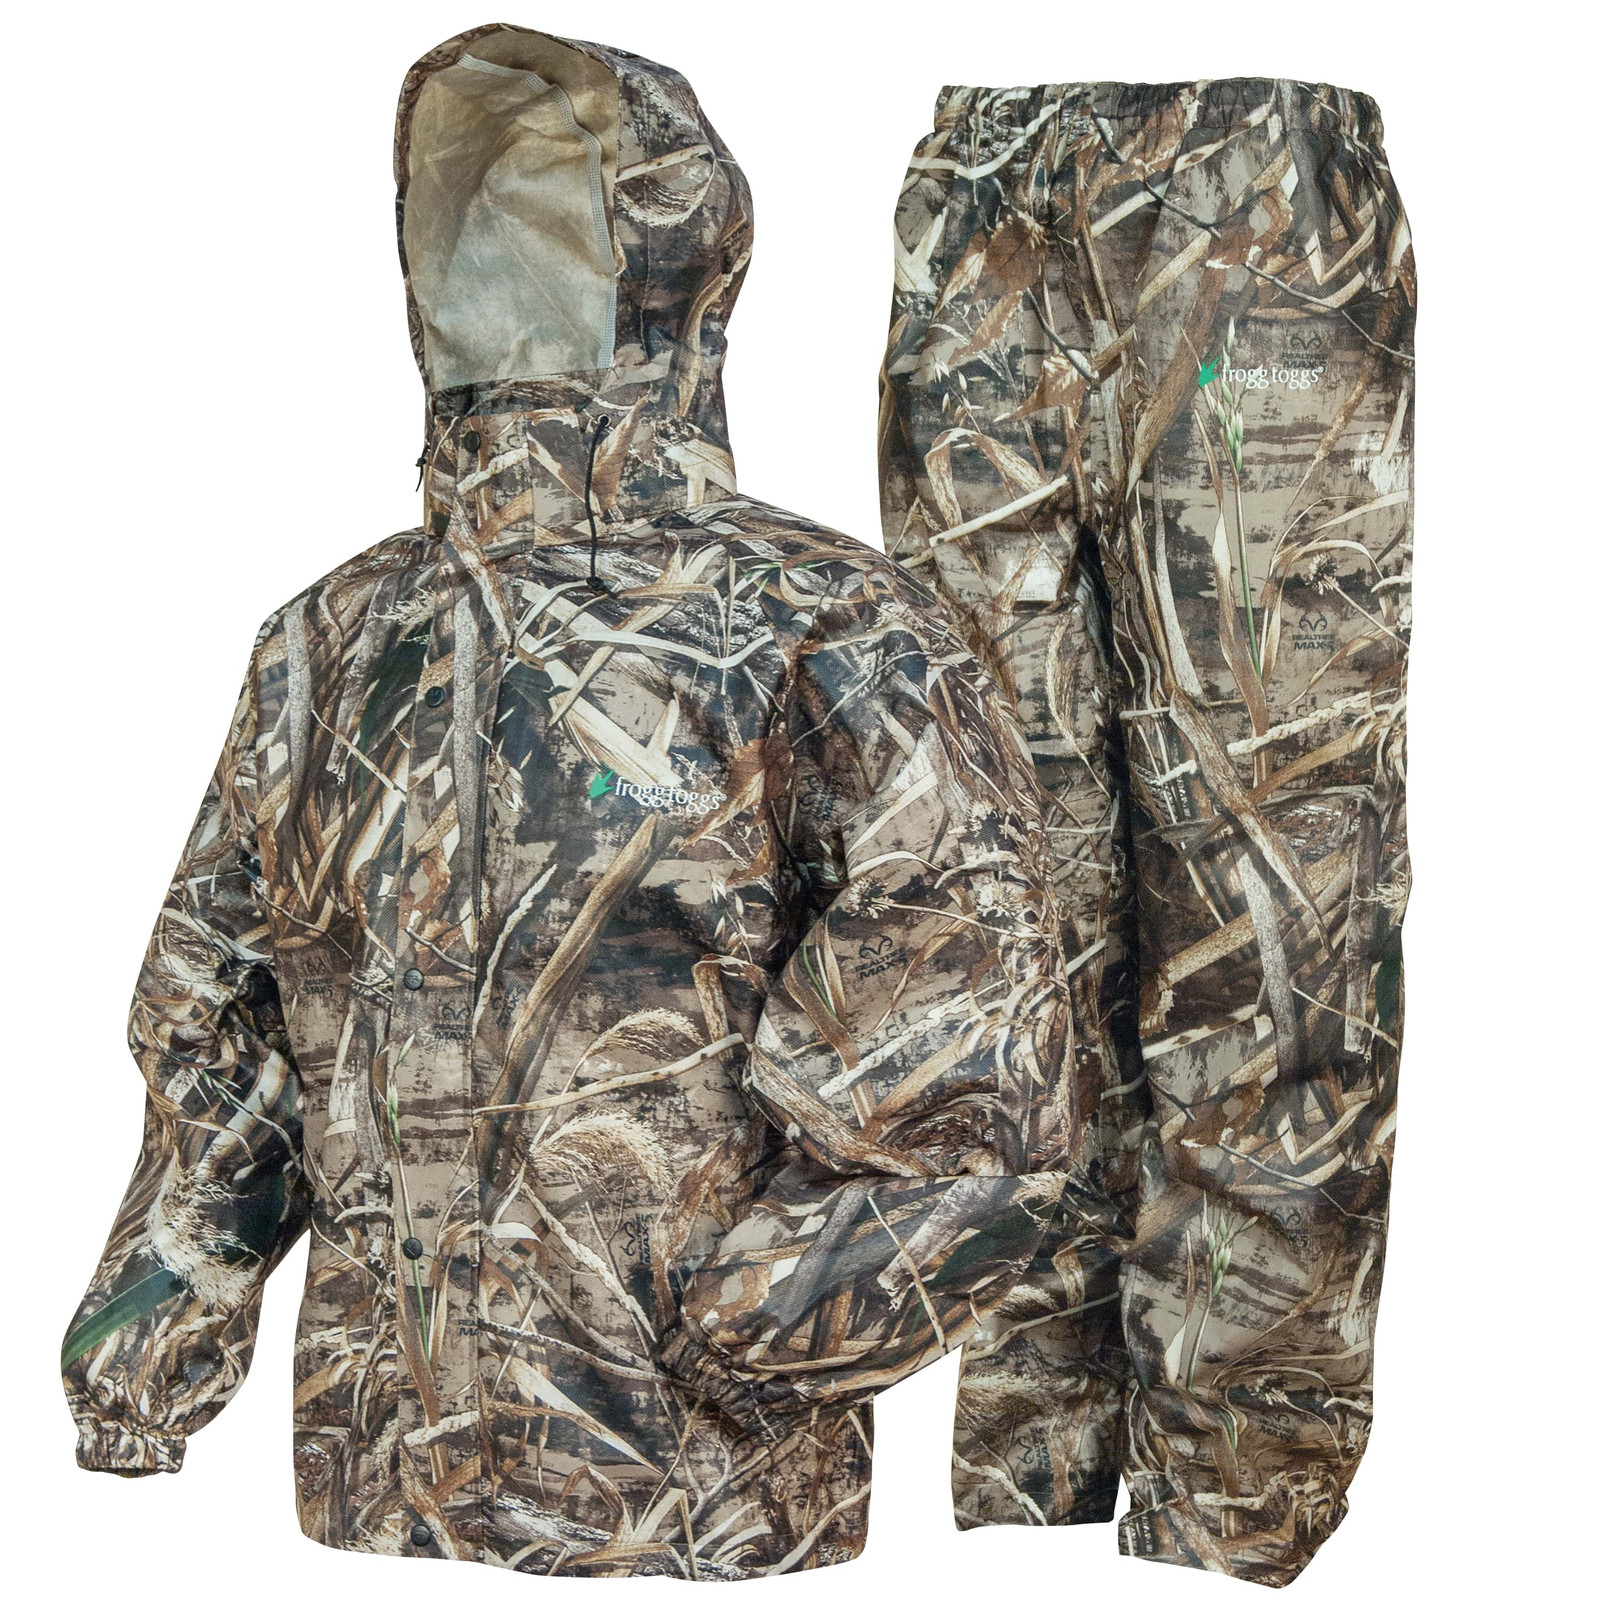 All Sport Suit Realtree Max 5-large